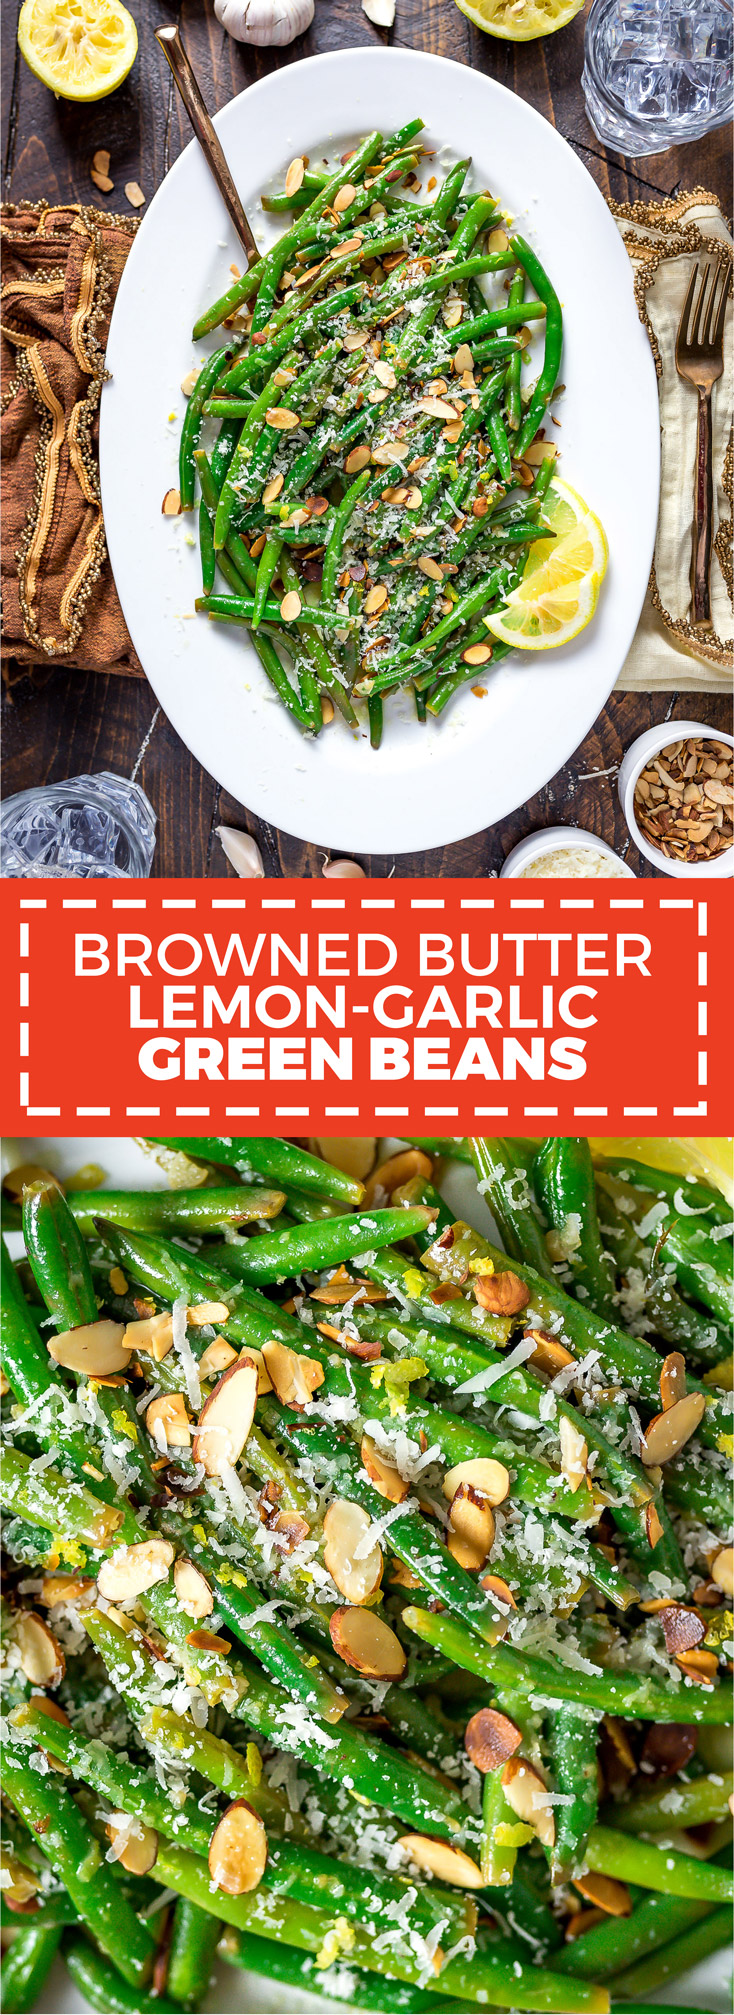 Browned Butter Lemon-Garlic Green Beans. Green beans take on a deep, nutty flavor from toasted almonds, browned butter, and grated parmesan cheese. Lemon juice adds a little brightness to balance out the rich butter sauce, and plenty of garlic will make these green beans the highlight of your dinner. | hostthetoast.com